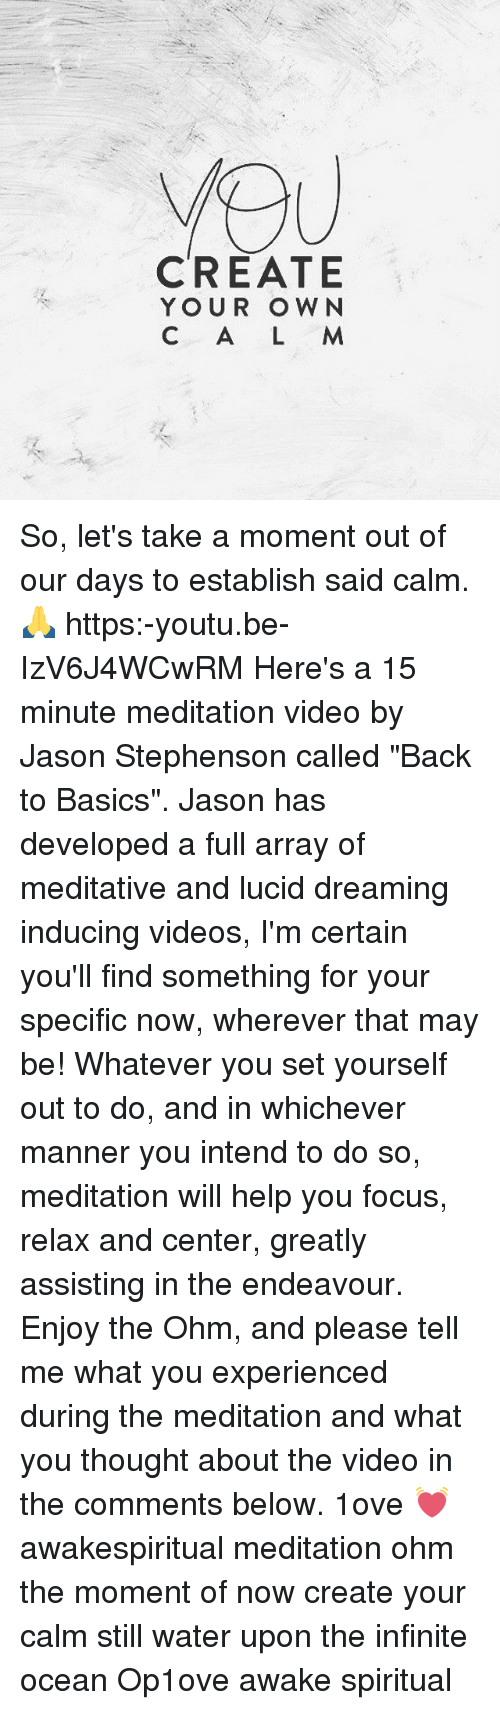 """Backes: CREATE  YOUR OWN  C A L M So, let's take a moment out of our days to establish said calm. 🙏 https:-youtu.be-IzV6J4WCwRM Here's a 15 minute meditation video by Jason Stephenson called """"Back to Basics"""". Jason has developed a full array of meditative and lucid dreaming inducing videos, I'm certain you'll find something for your specific now, wherever that may be! Whatever you set yourself out to do, and in whichever manner you intend to do so, meditation will help you focus, relax and center, greatly assisting in the endeavour. Enjoy the Ohm, and please tell me what you experienced during the meditation and what you thought about the video in the comments below. 1ove 💓 awakespiritual meditation ohm the moment of now create your calm still water upon the infinite ocean Op1ove awake spiritual"""